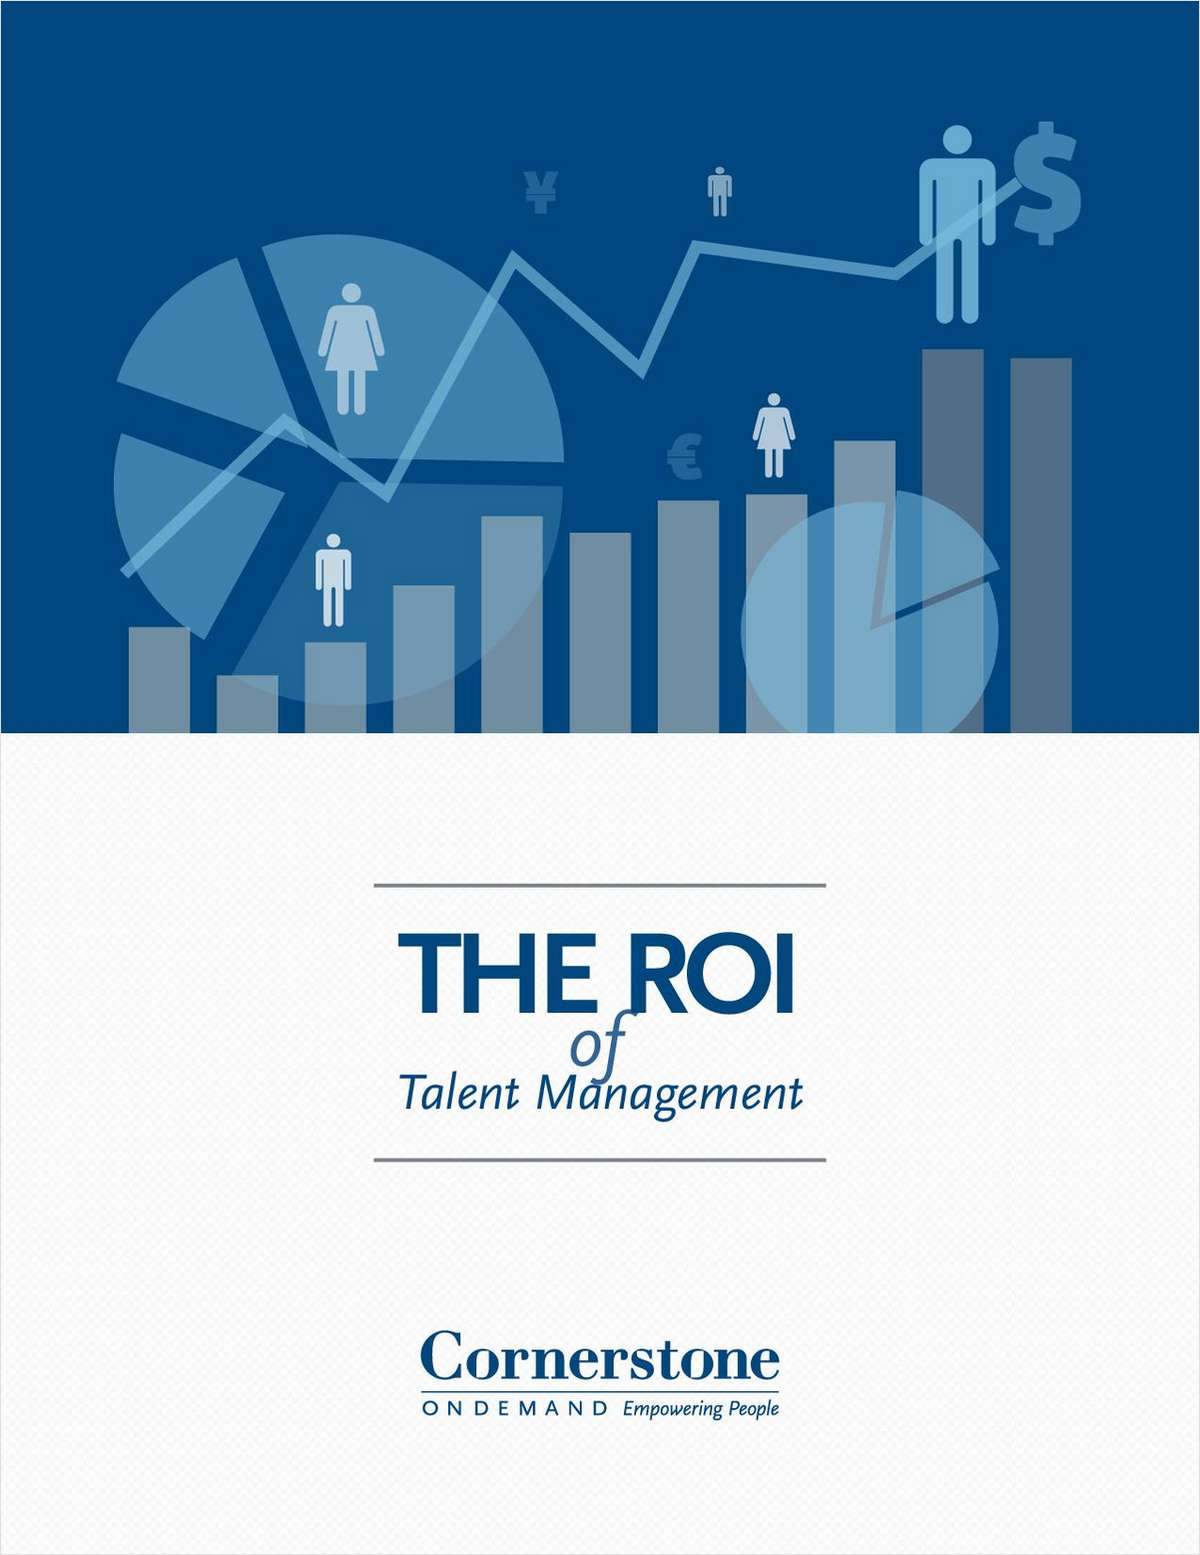 The ROI of Talent Management